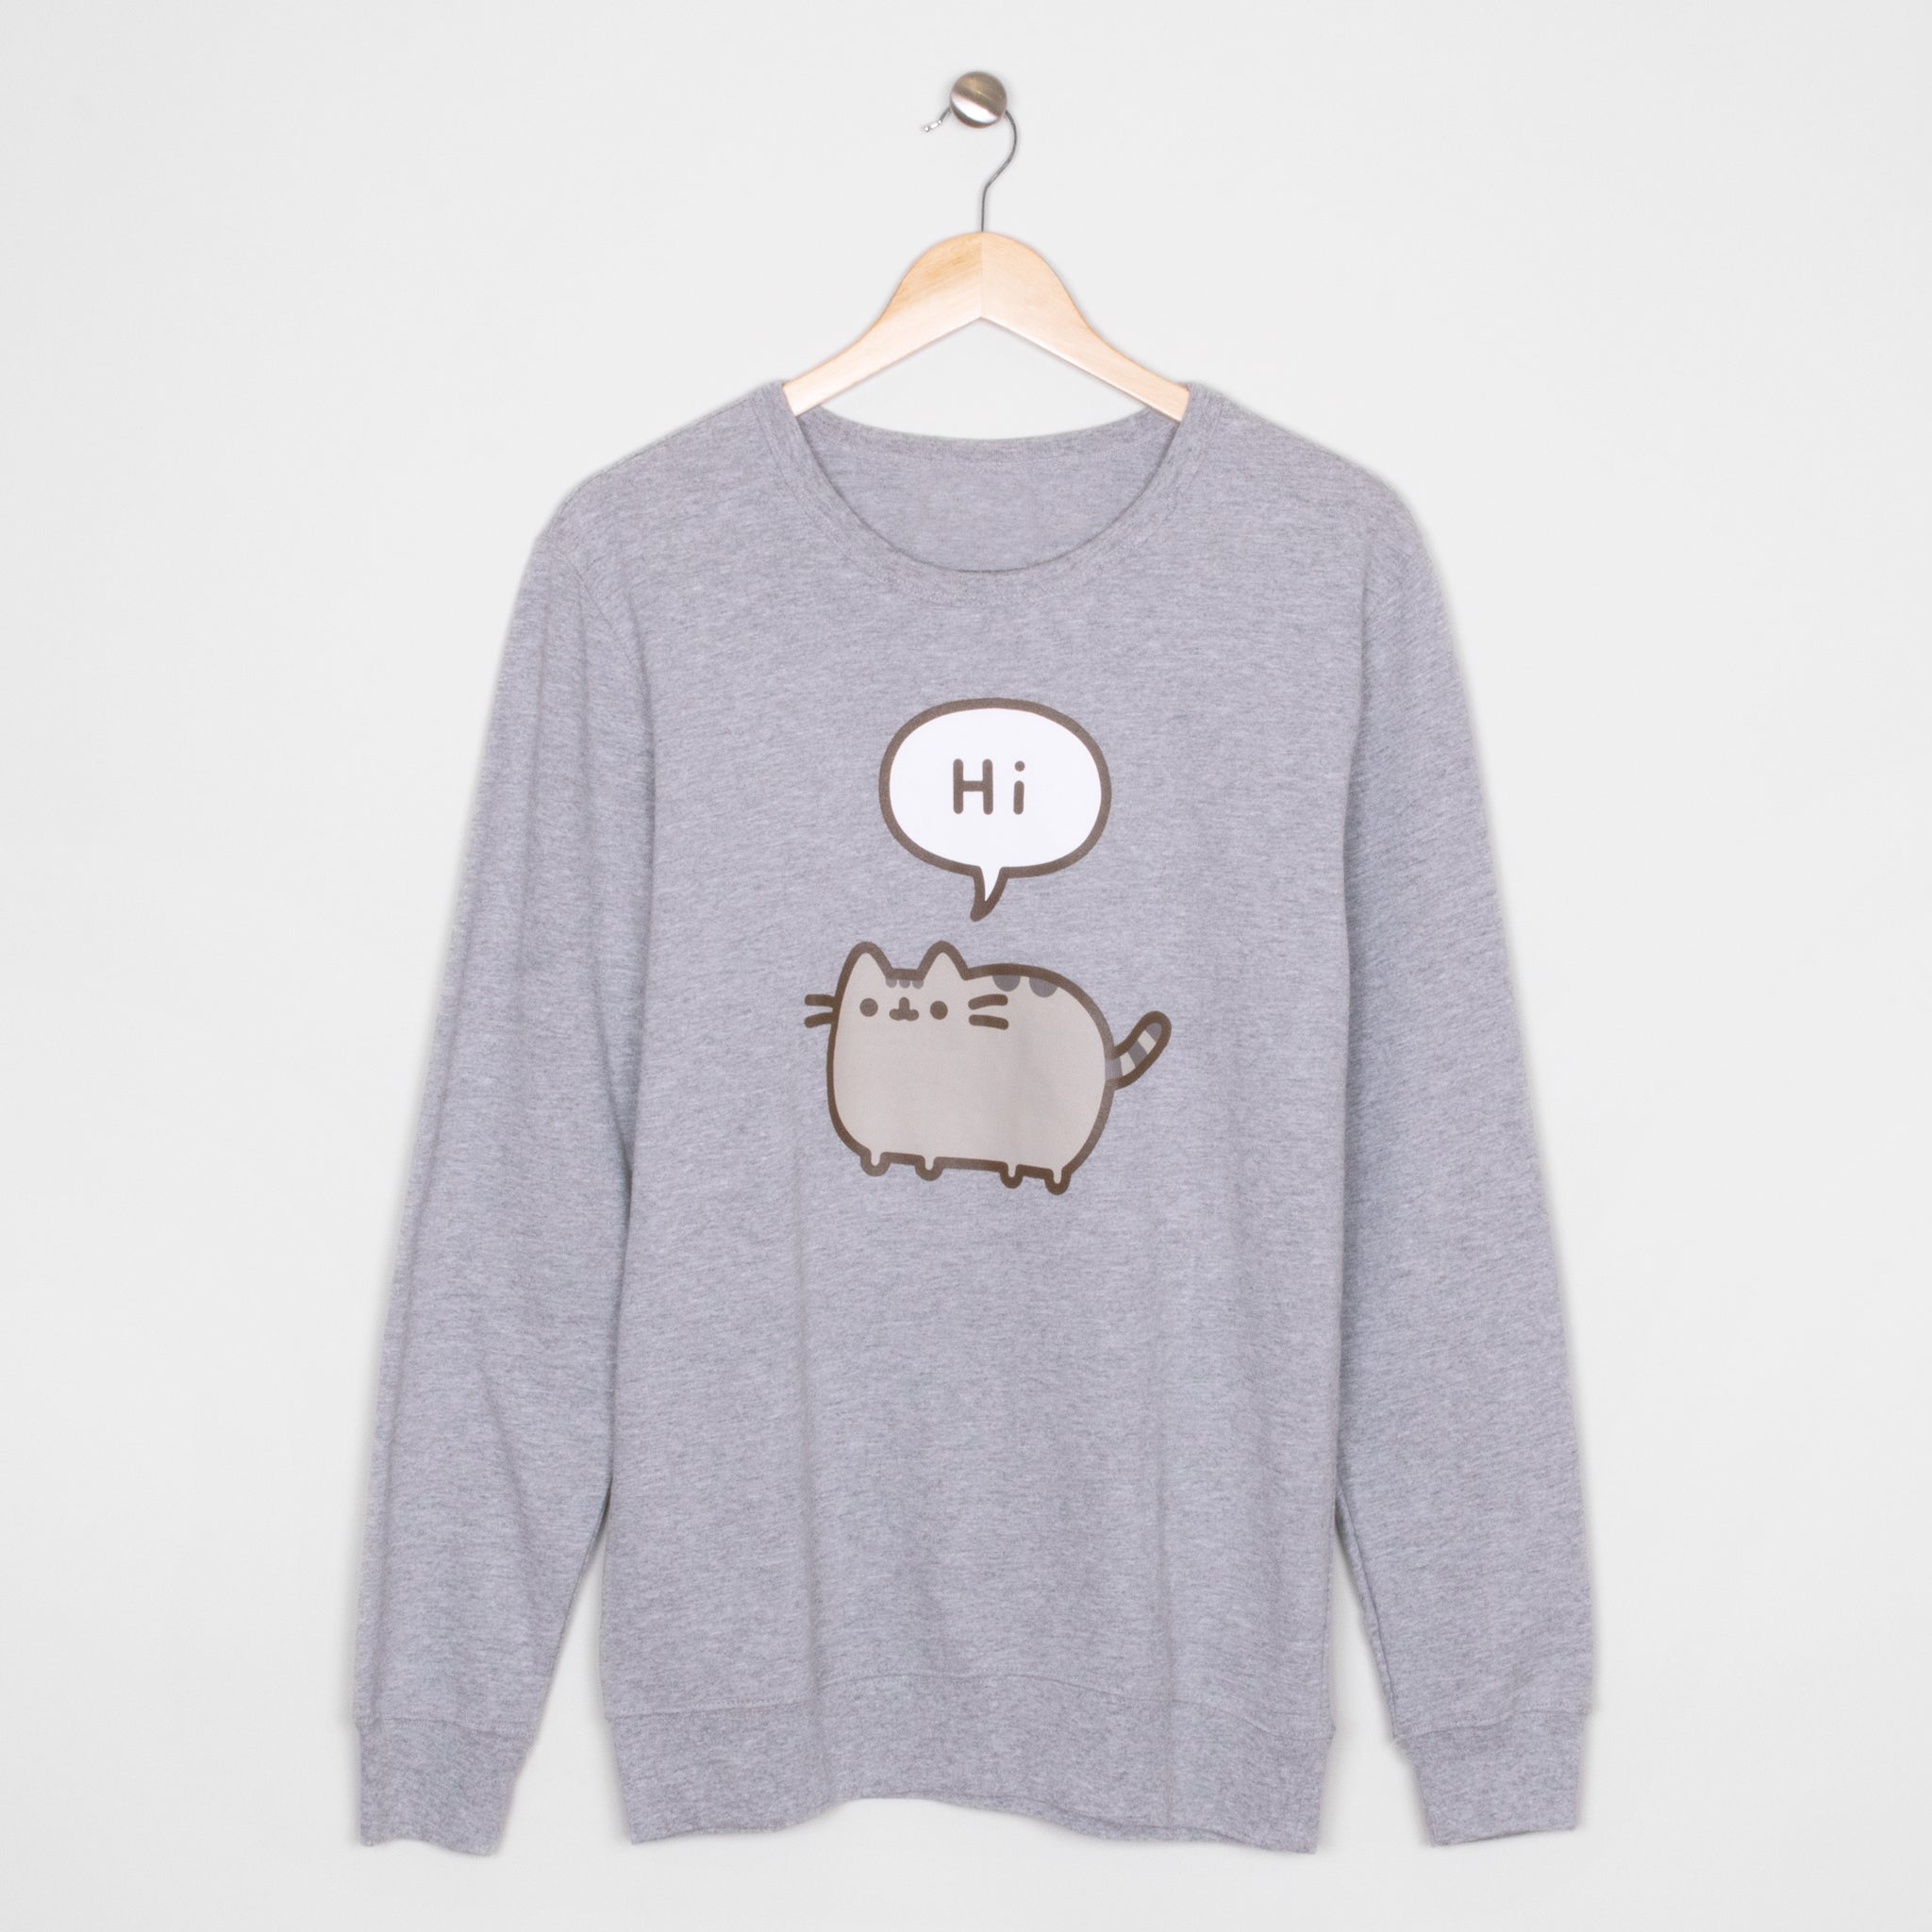 pusheen hi bye front apparel sweater longsleeve shirt cute cat culturefly